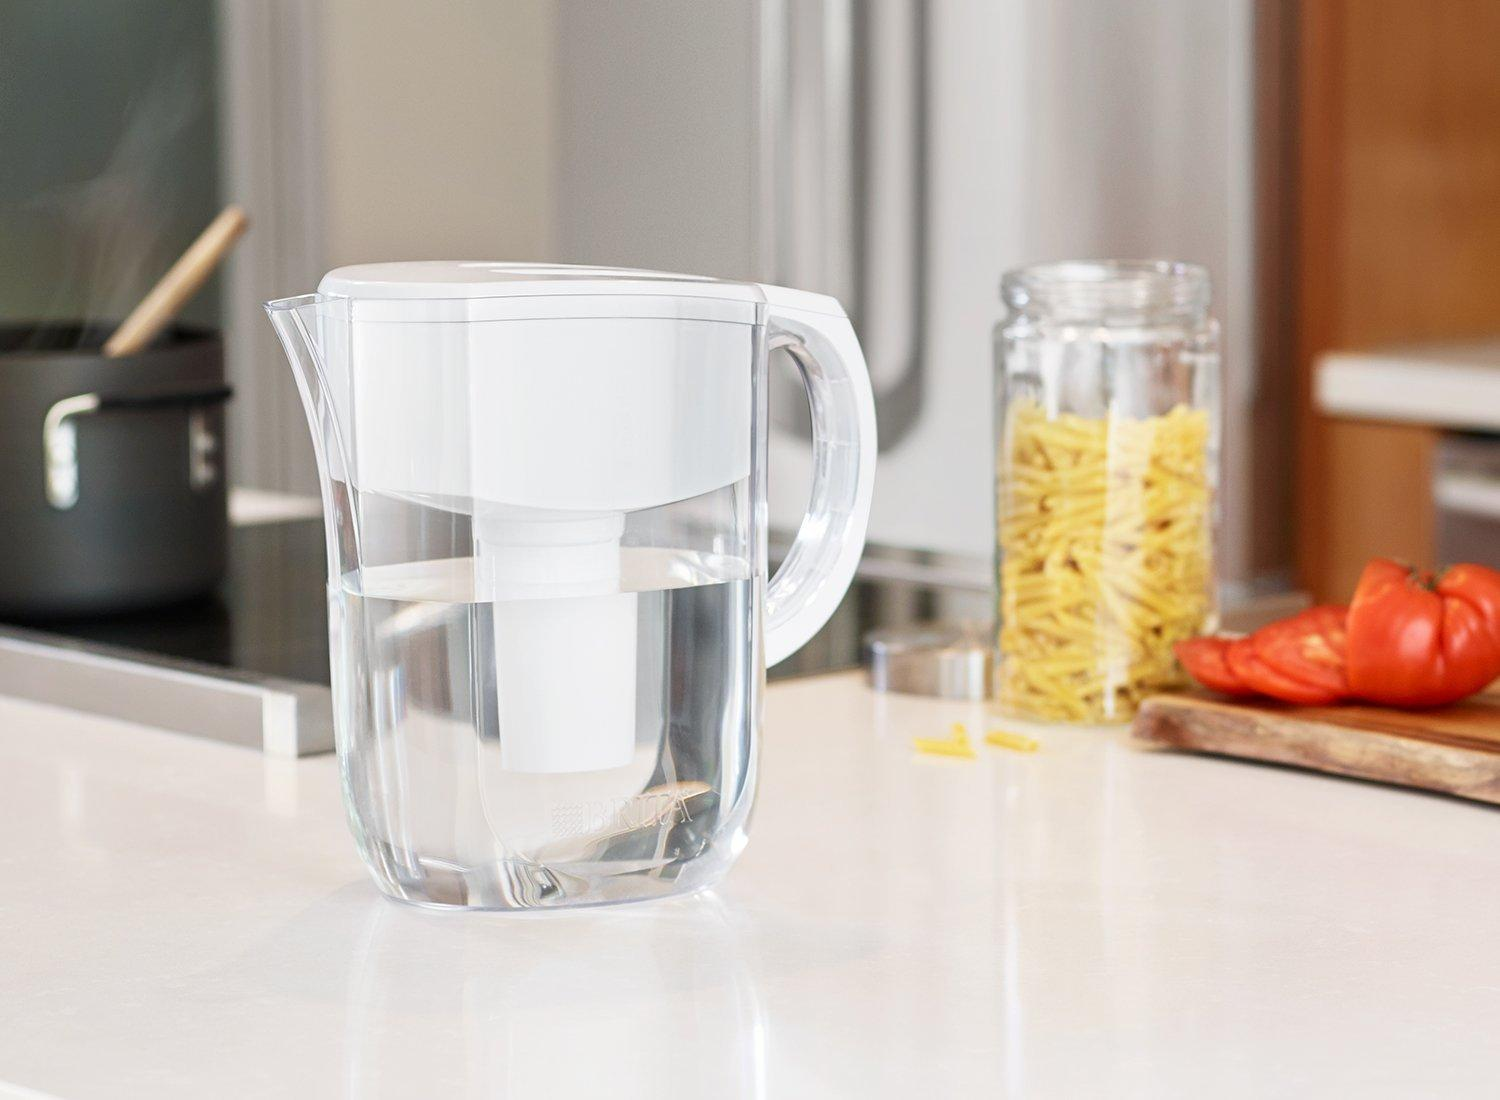 $15.99 Lightning deal! Brita 5 Cup Metro Water Pitcher with 1 Filter, BPA Free, White